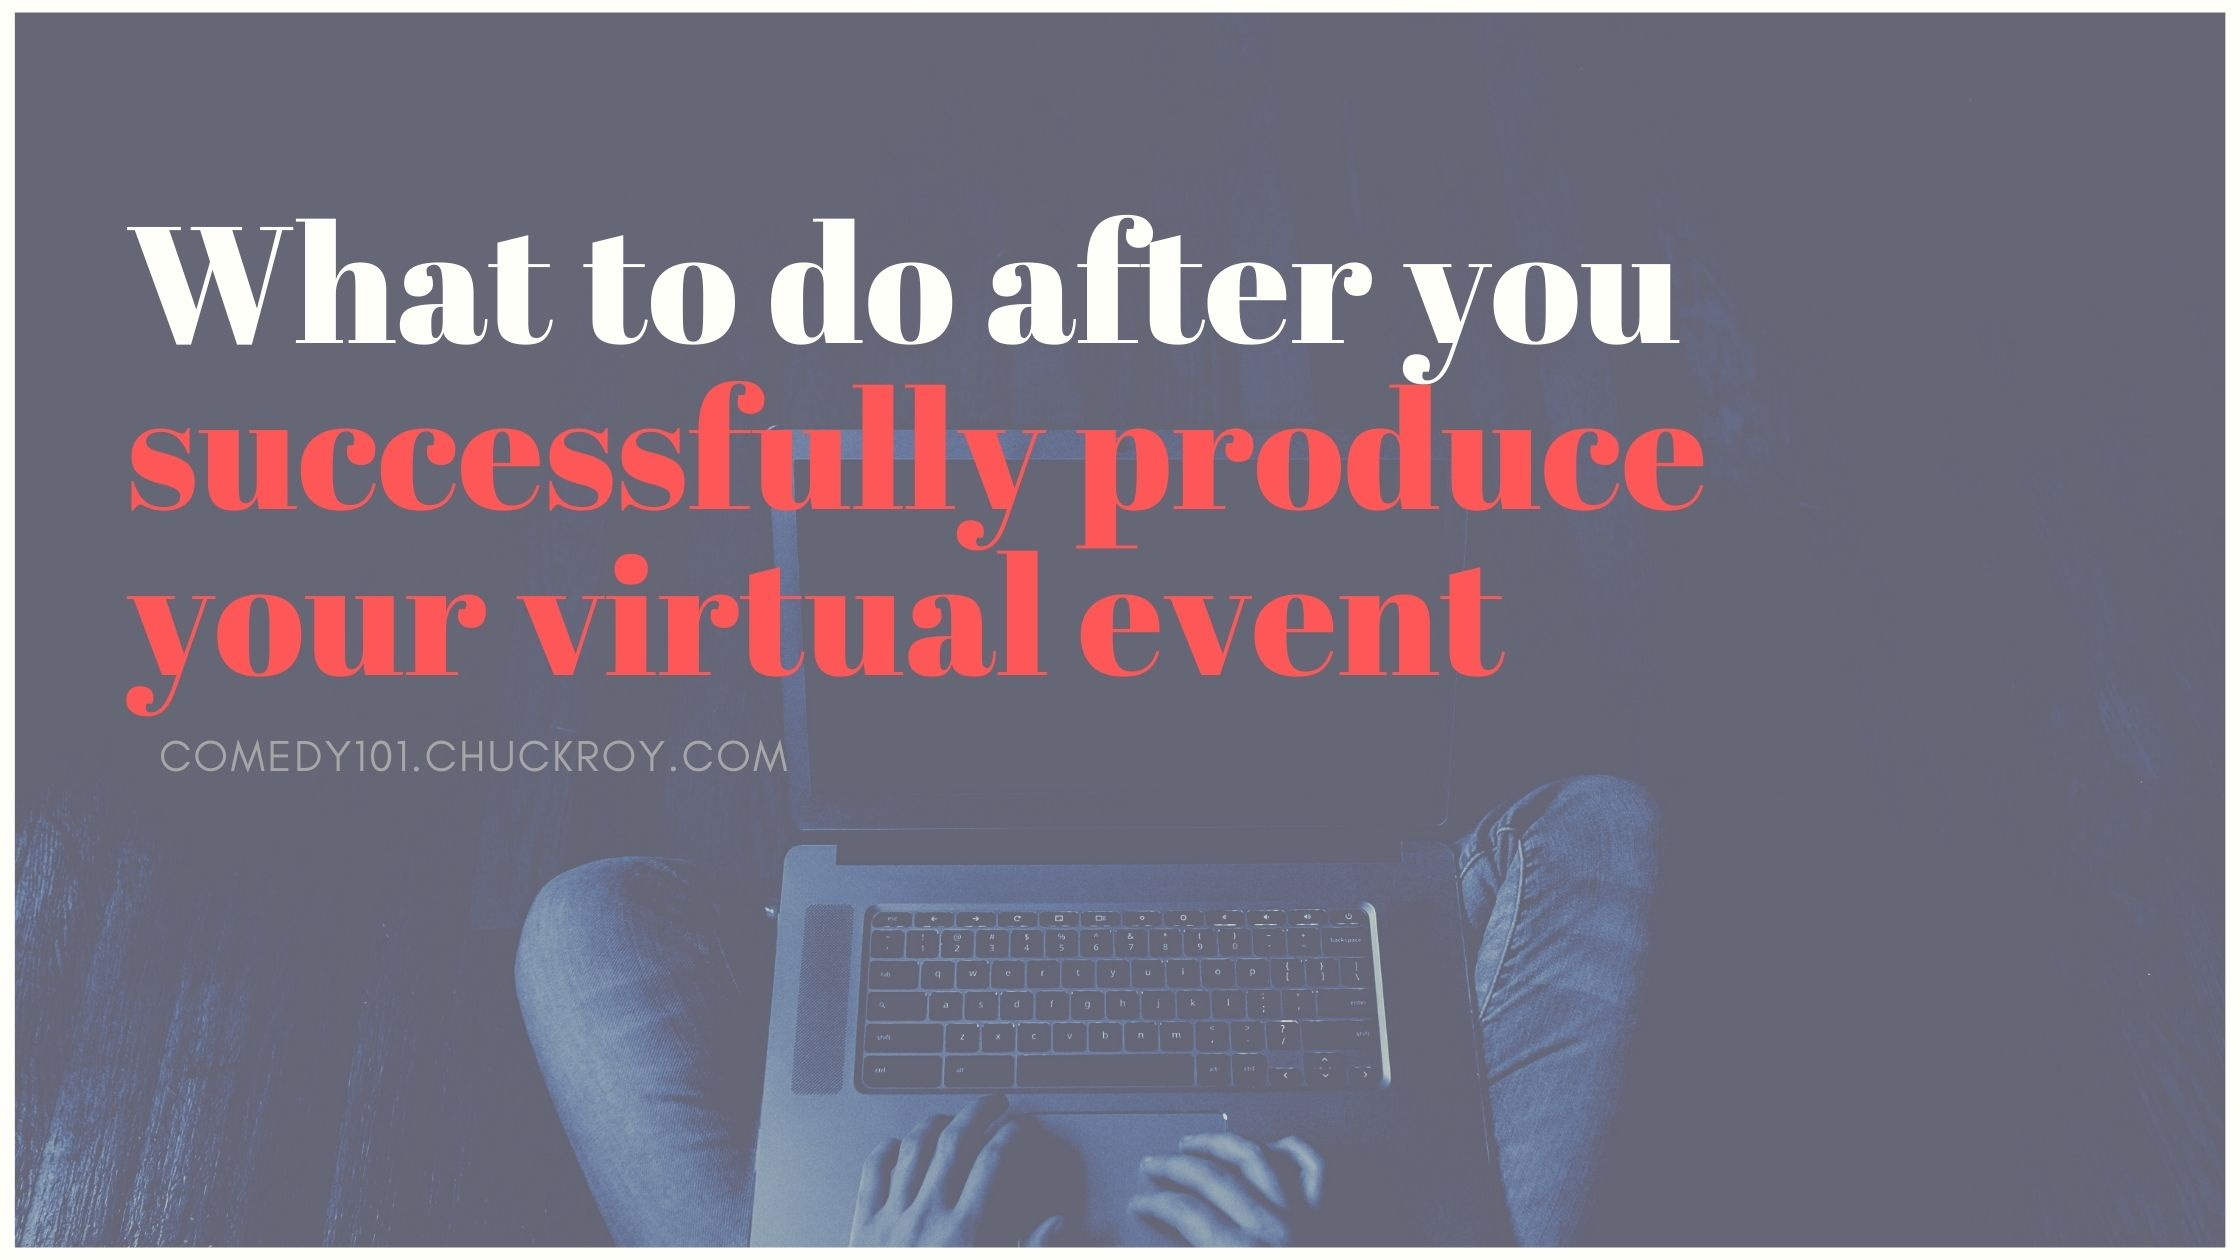 What to do after you successfully produce your virtual event